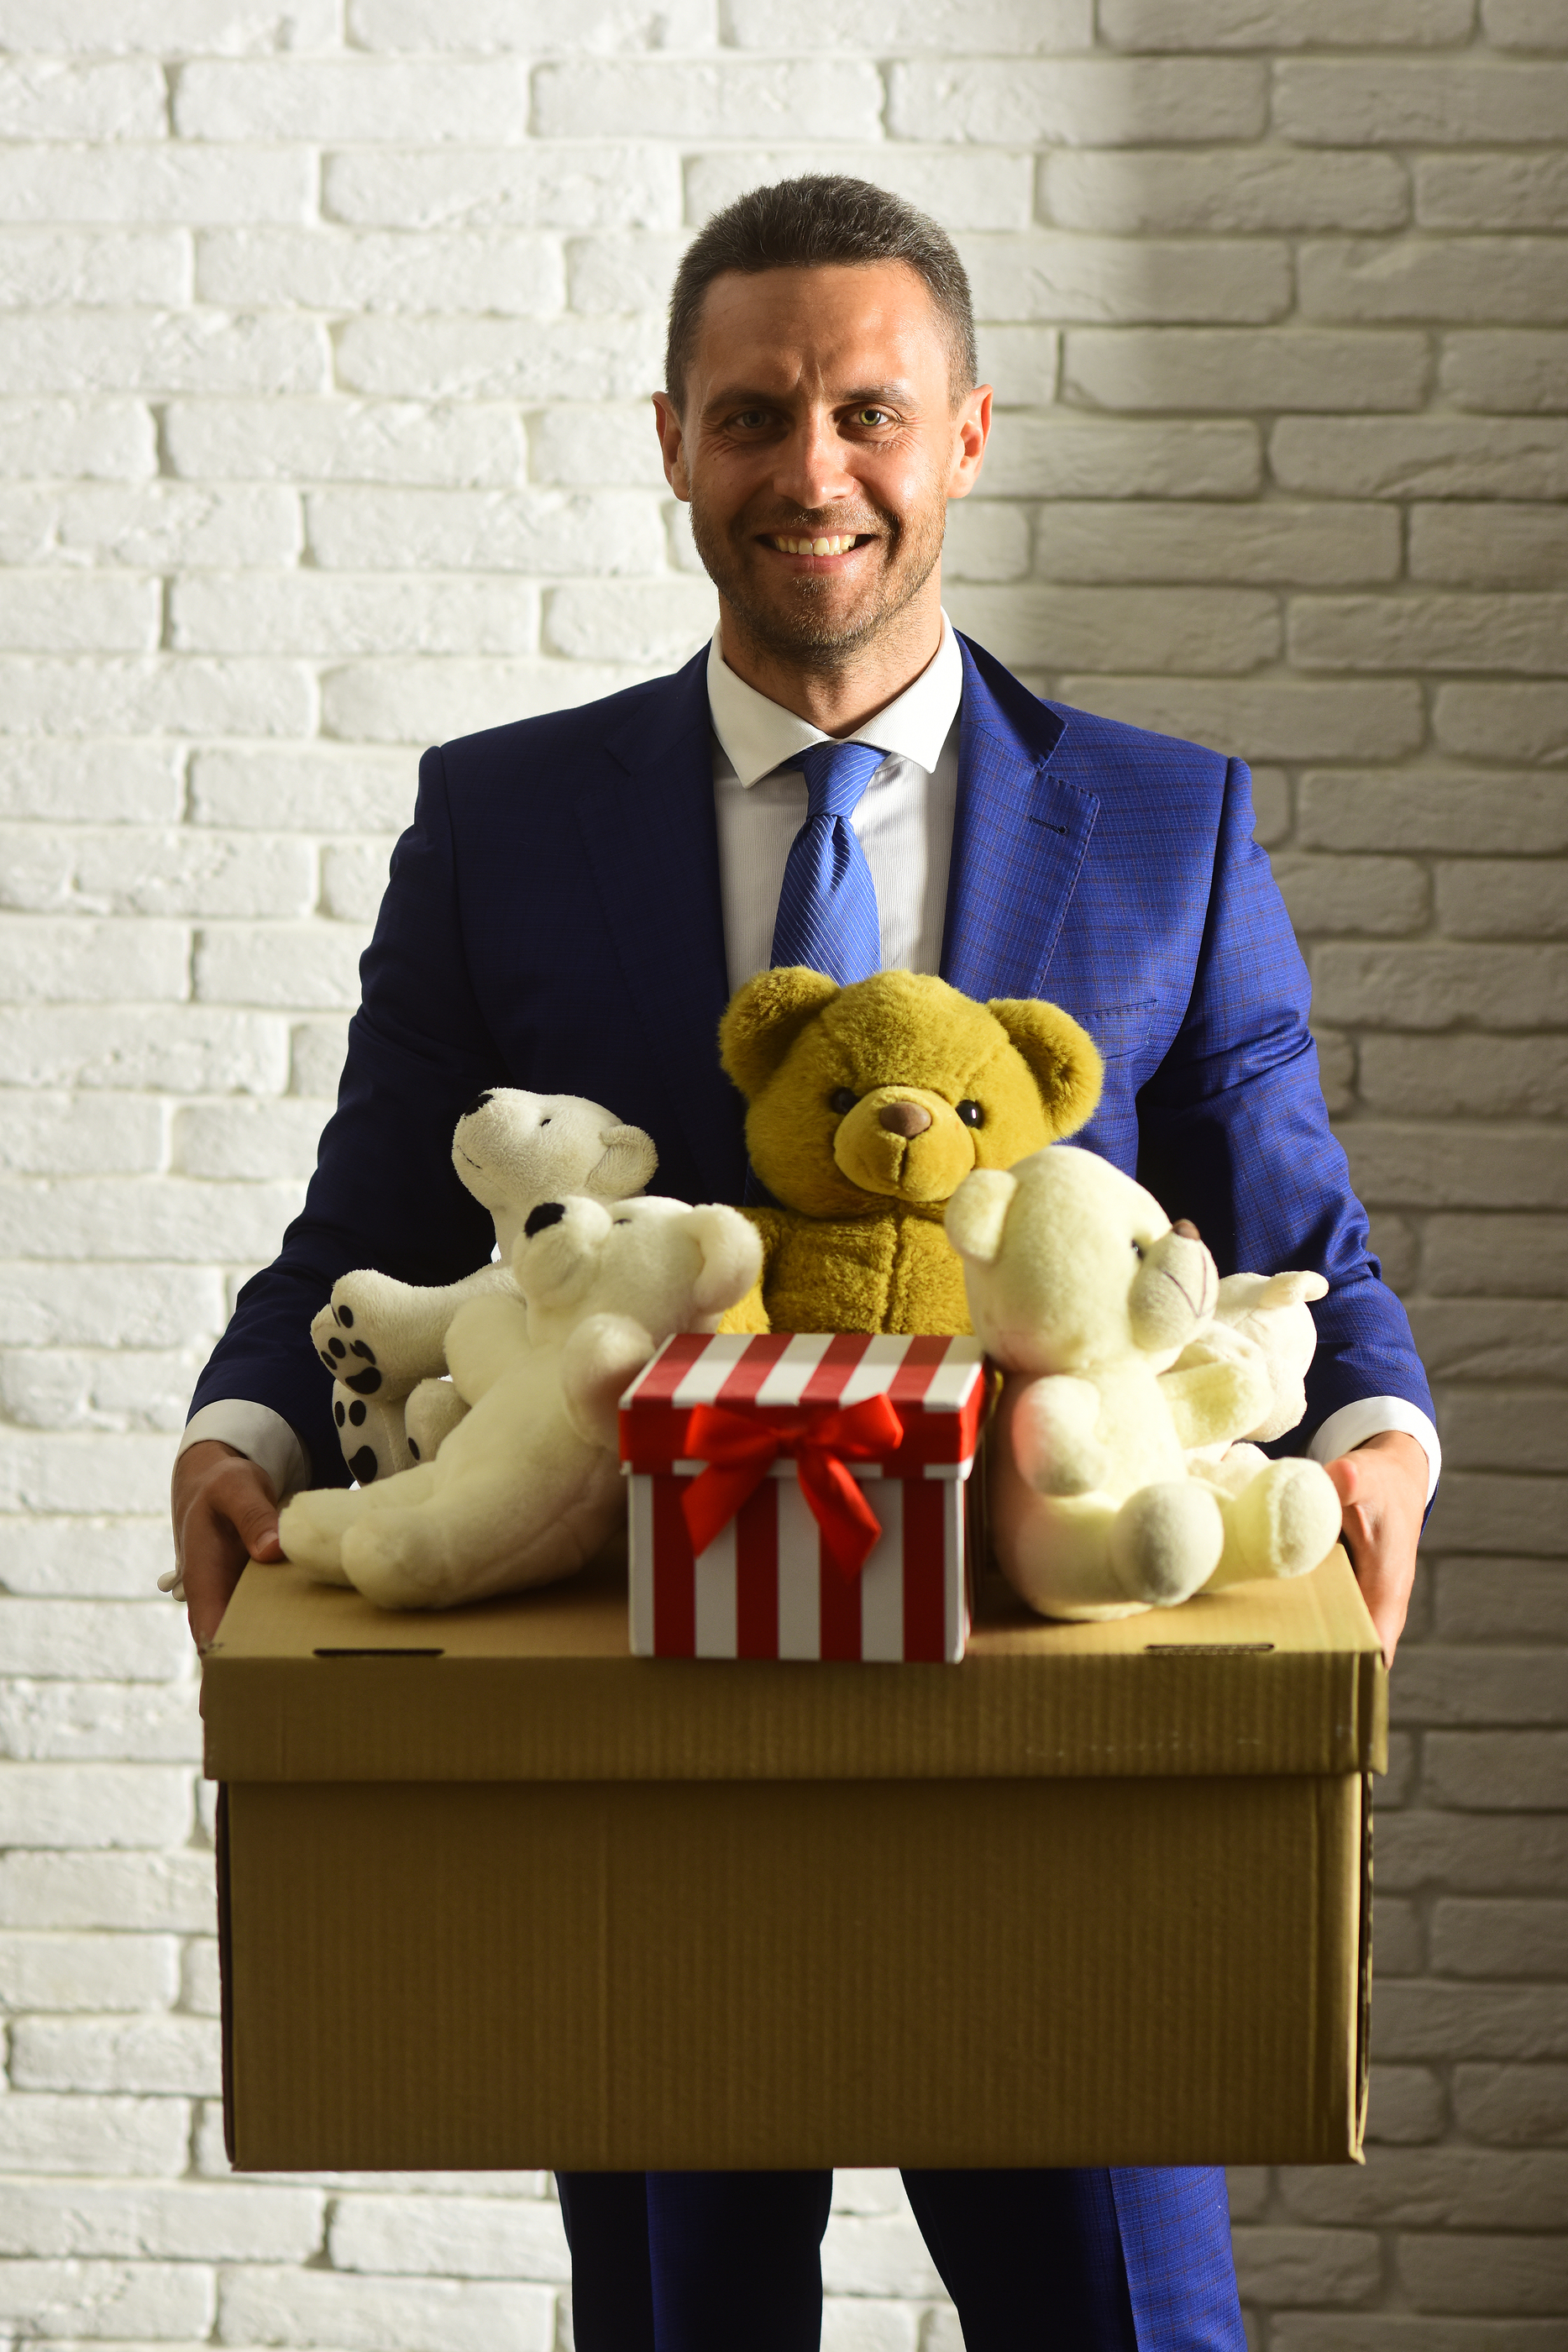 Businessman wears smart suit and tie. Business and volunteering concept. Executive holds box full of toys and Christmas present on white brick wall background. Man with smiling face makes donation.